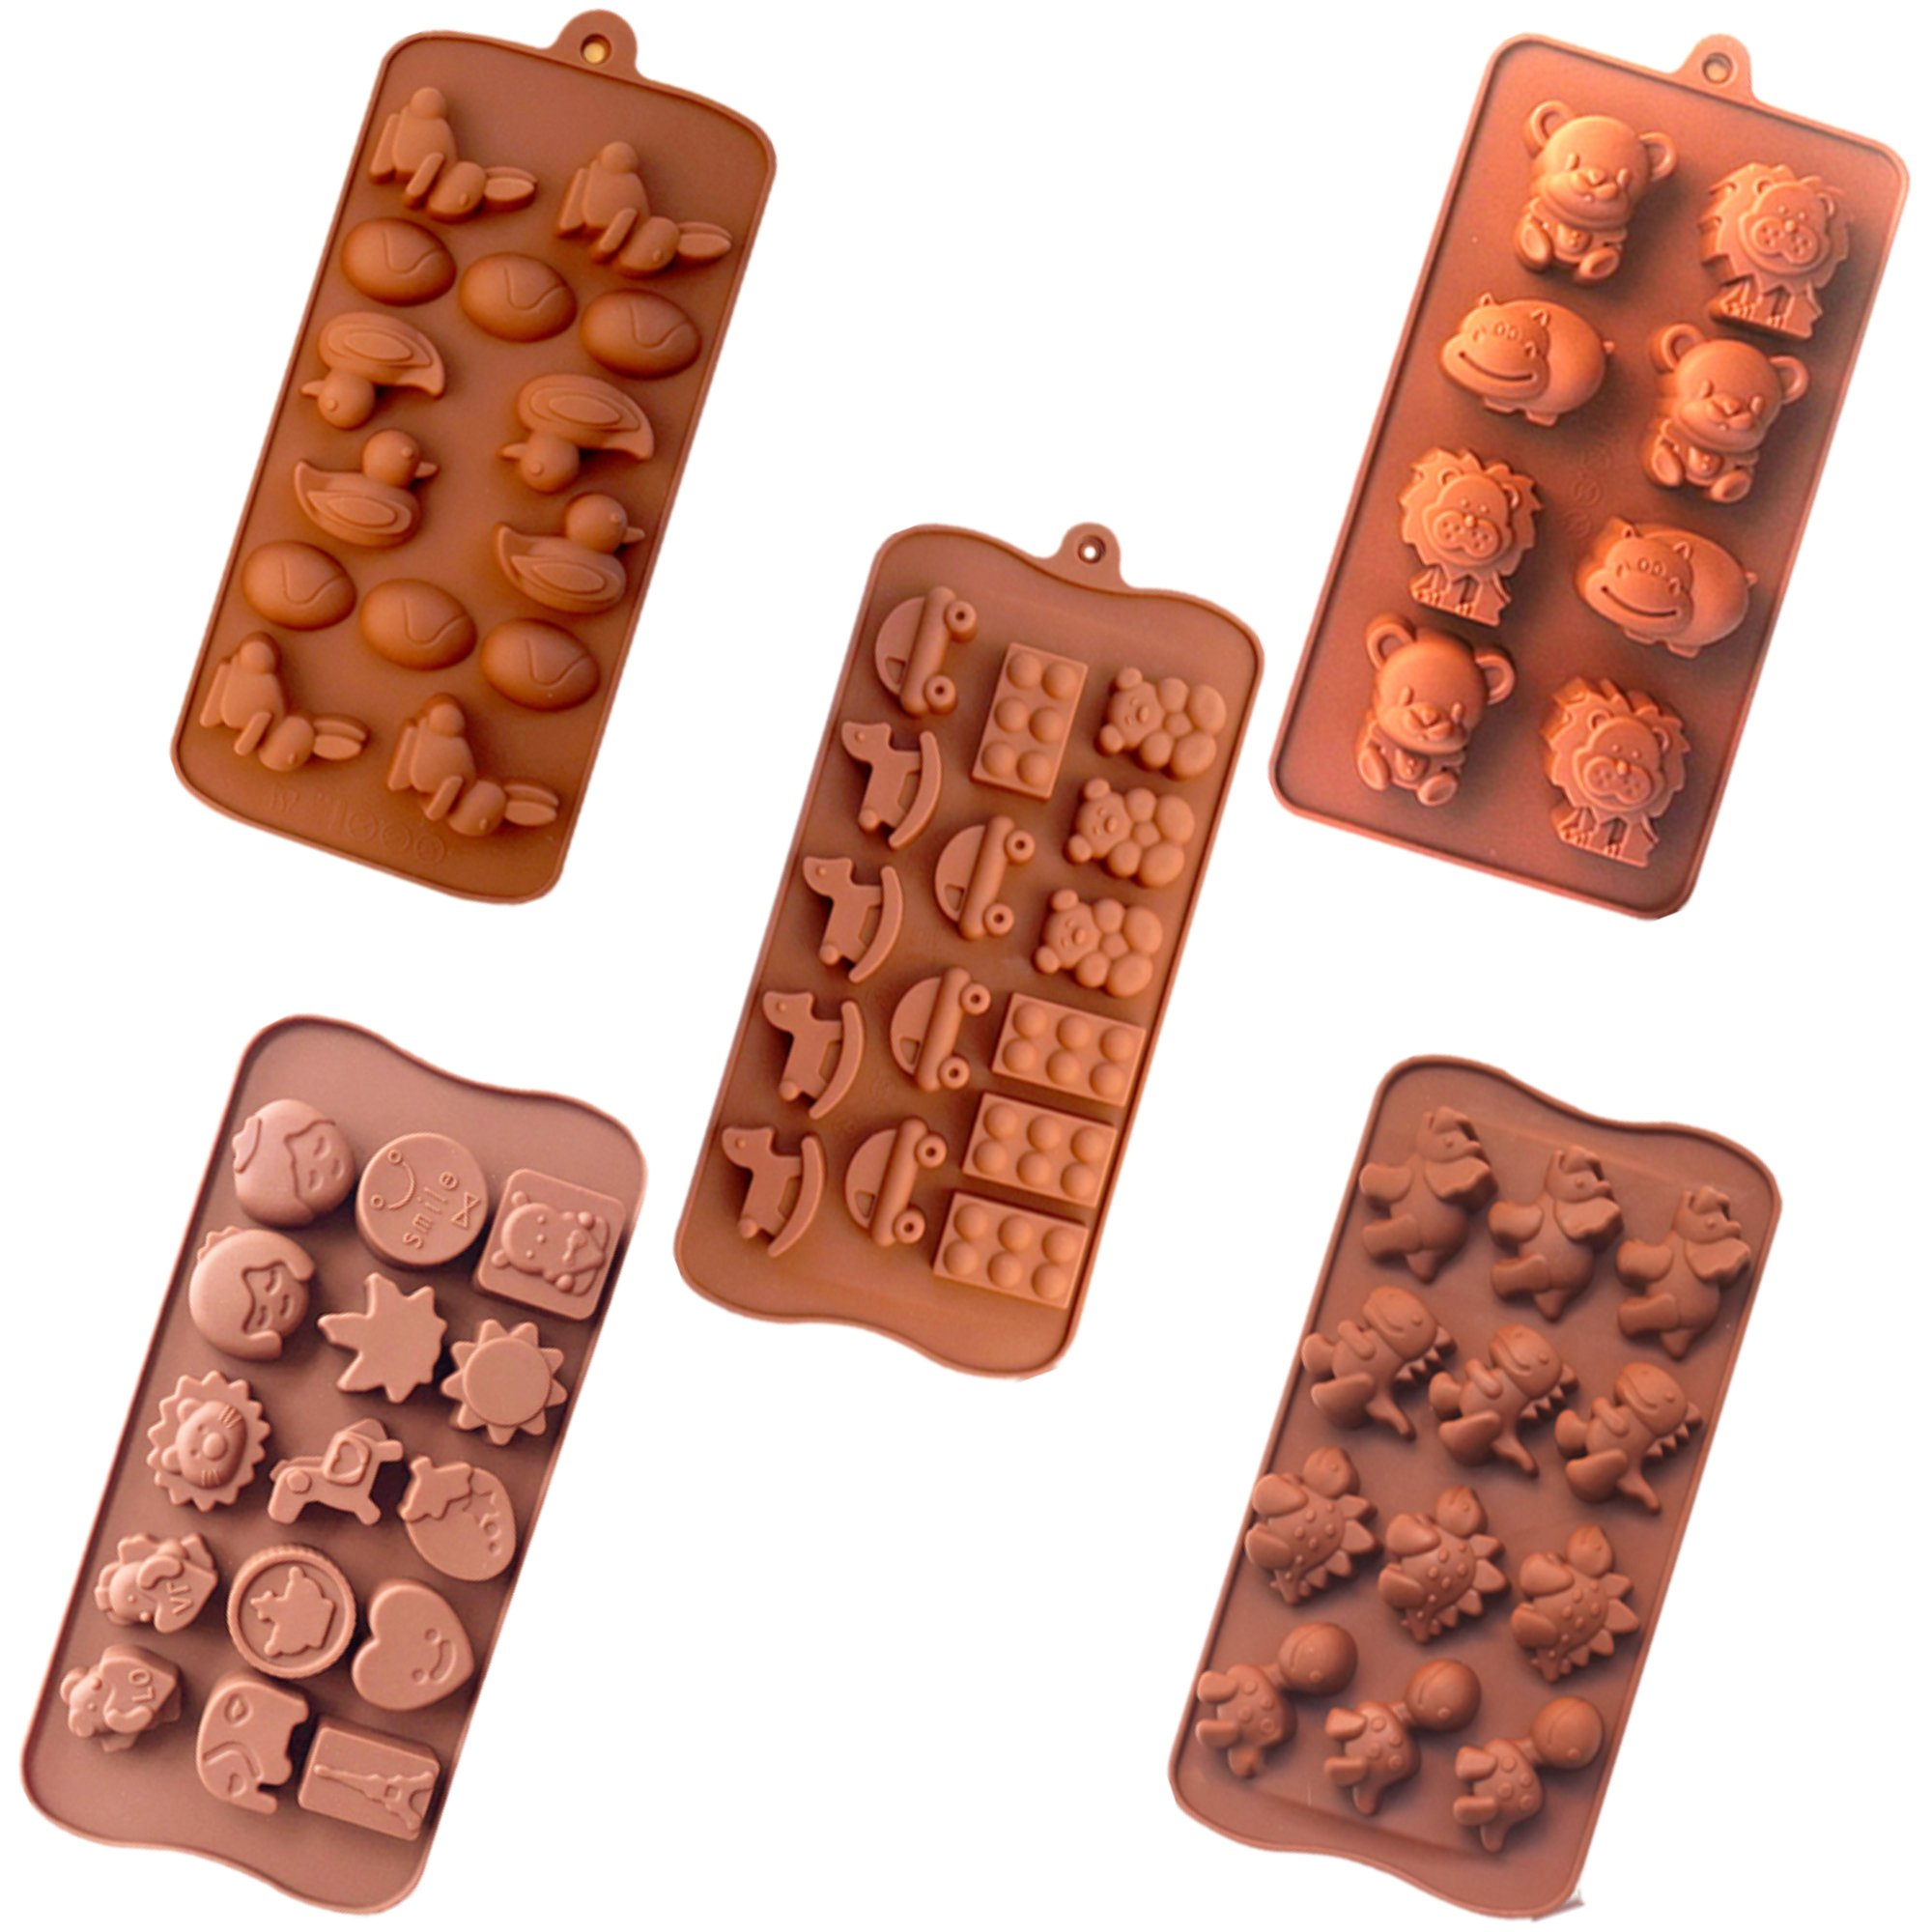 Wocuz 6pc Candy Molds, Chocolate Molds, Silicone Molds, Soap Molds, Silicone Baking Molds-6pc Value Set- Dinosaur,happy Faces,robots,bunny,figures,fruits, Kids Toys (Set of 6)